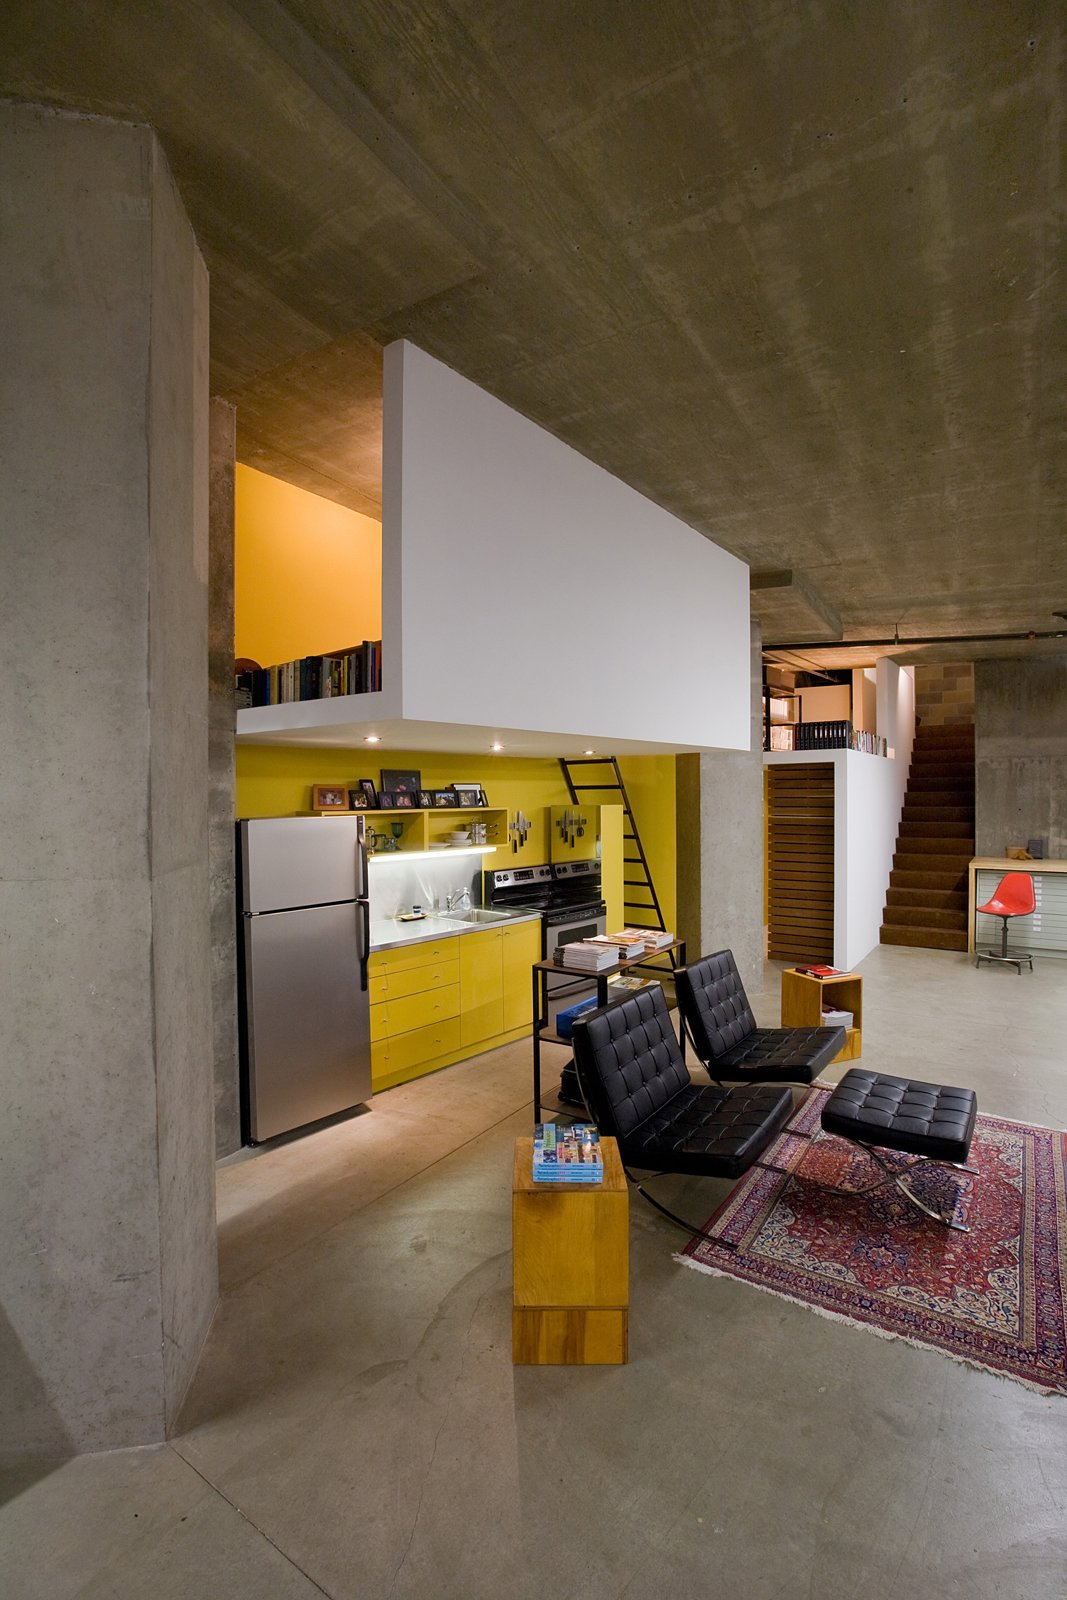 """The kitchen didn't really have a home,"" says Colkitt. His solution was to build the sleeping loft directly above it, giving the kitchen some architectural congruity, and implement recessed lighting into the dropped ceiling, also the underside of the floor of the sleeping loft. Like the reading loft, the sleeping loft is open on both sides to bring in light and air, with a single ladder leading up to it. ""The sleeping loft 'fold' is a complement to the reading loft 'fold'—they balance each other out,"" says Colkitt. Photo by Cheryl Ramsay Tagged: Kitchen, Colorful Cabinet, and Concrete Floor. Clever Loft Spaces for Small Places by Diana Budds"